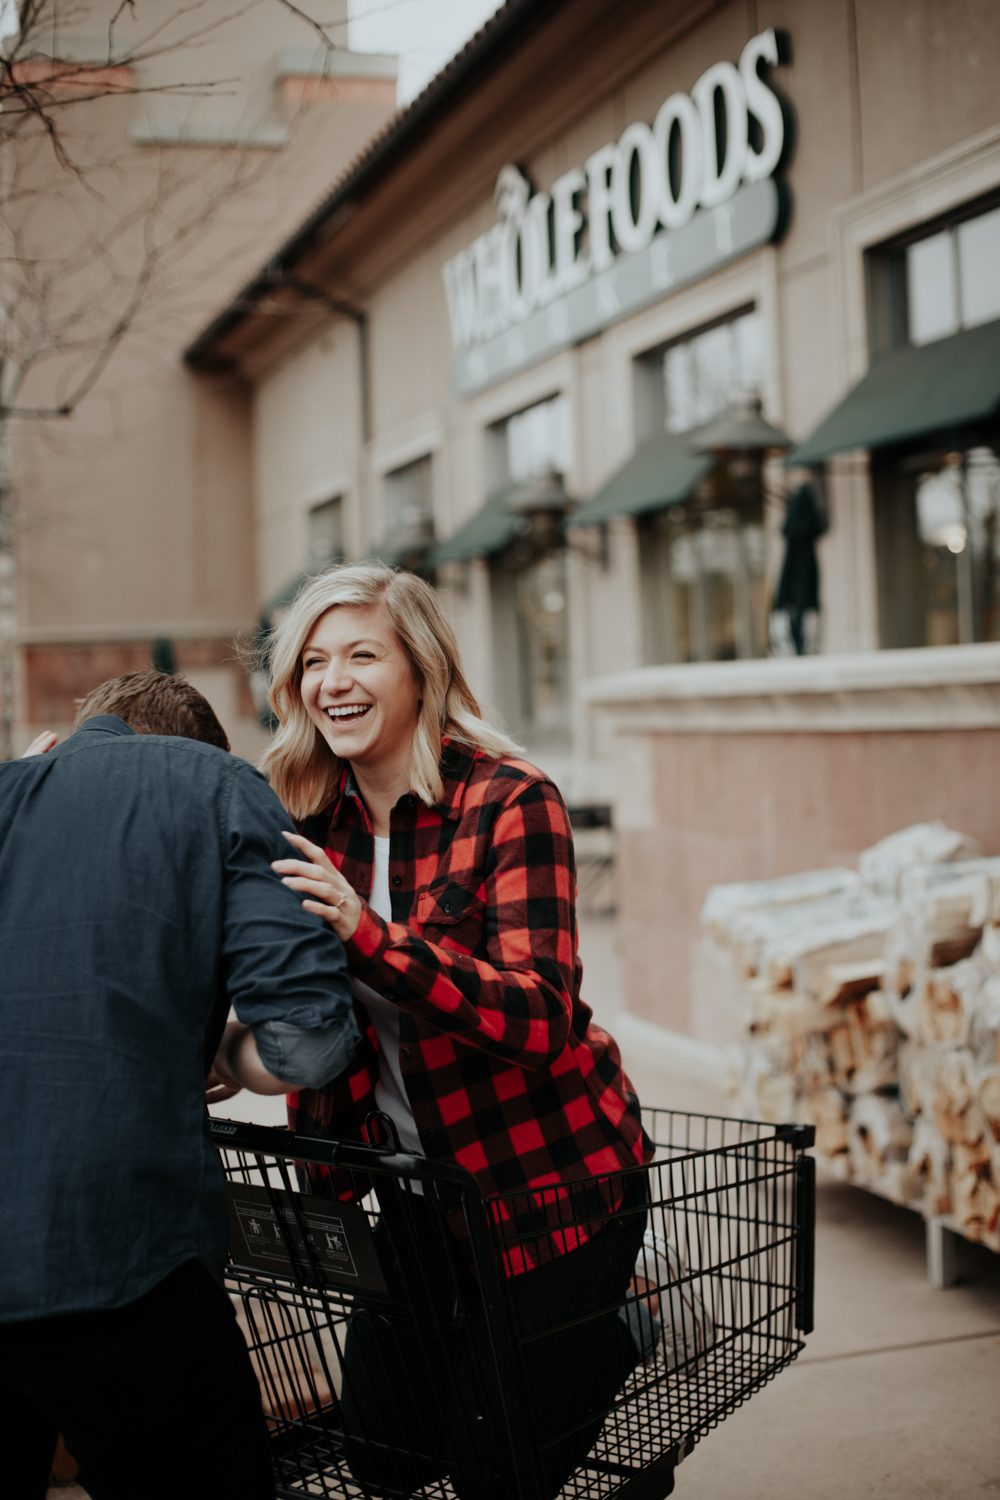 THE LOVE SERIES: A grocery store adventure with Jordyn & Brian | DIANA COULTER PHOTOGRAPHY